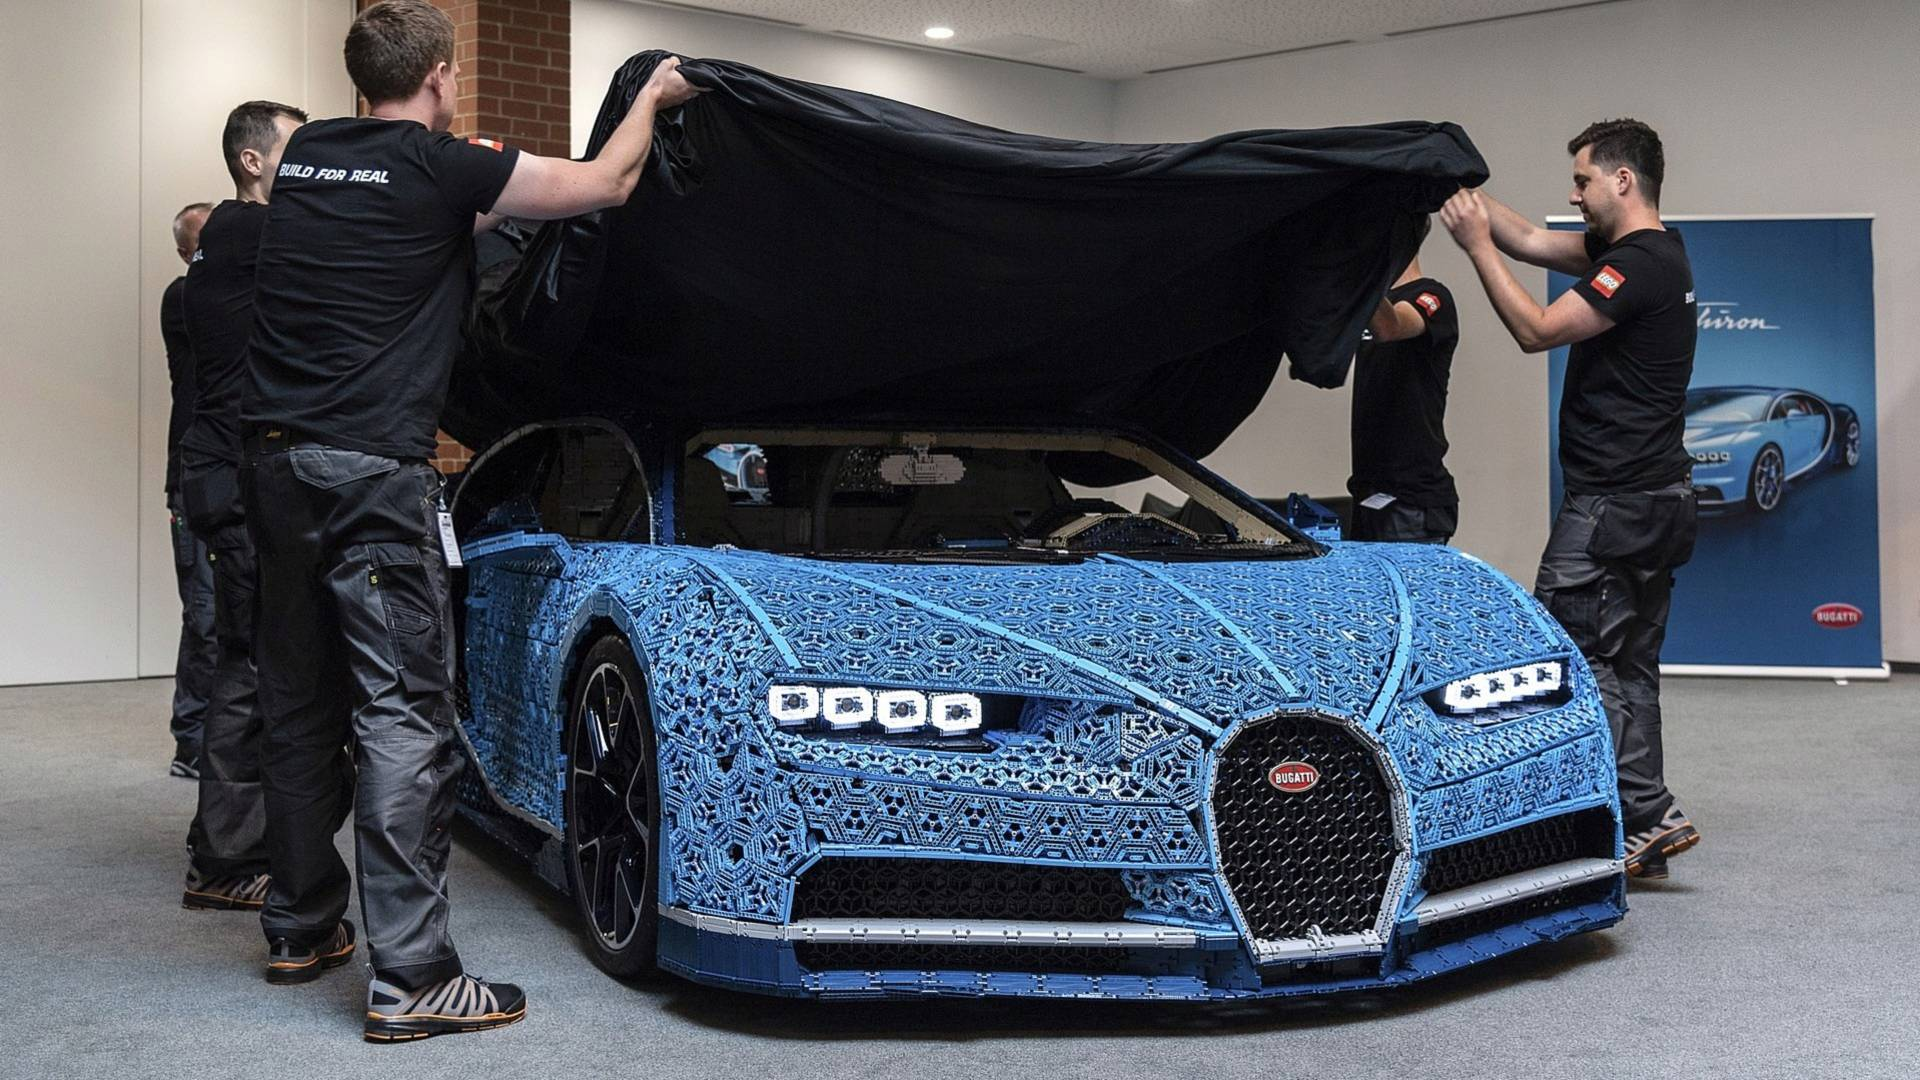 This Insane Life-Size Lego Technic Bugatti Chiron Is Drivable on homemade science cars, homemade toy cars, homemade diesel cars, homemade slot cars, homemade hot wheels cars, homemade barbie cars, homemade play-doh, cools kinect's cars,